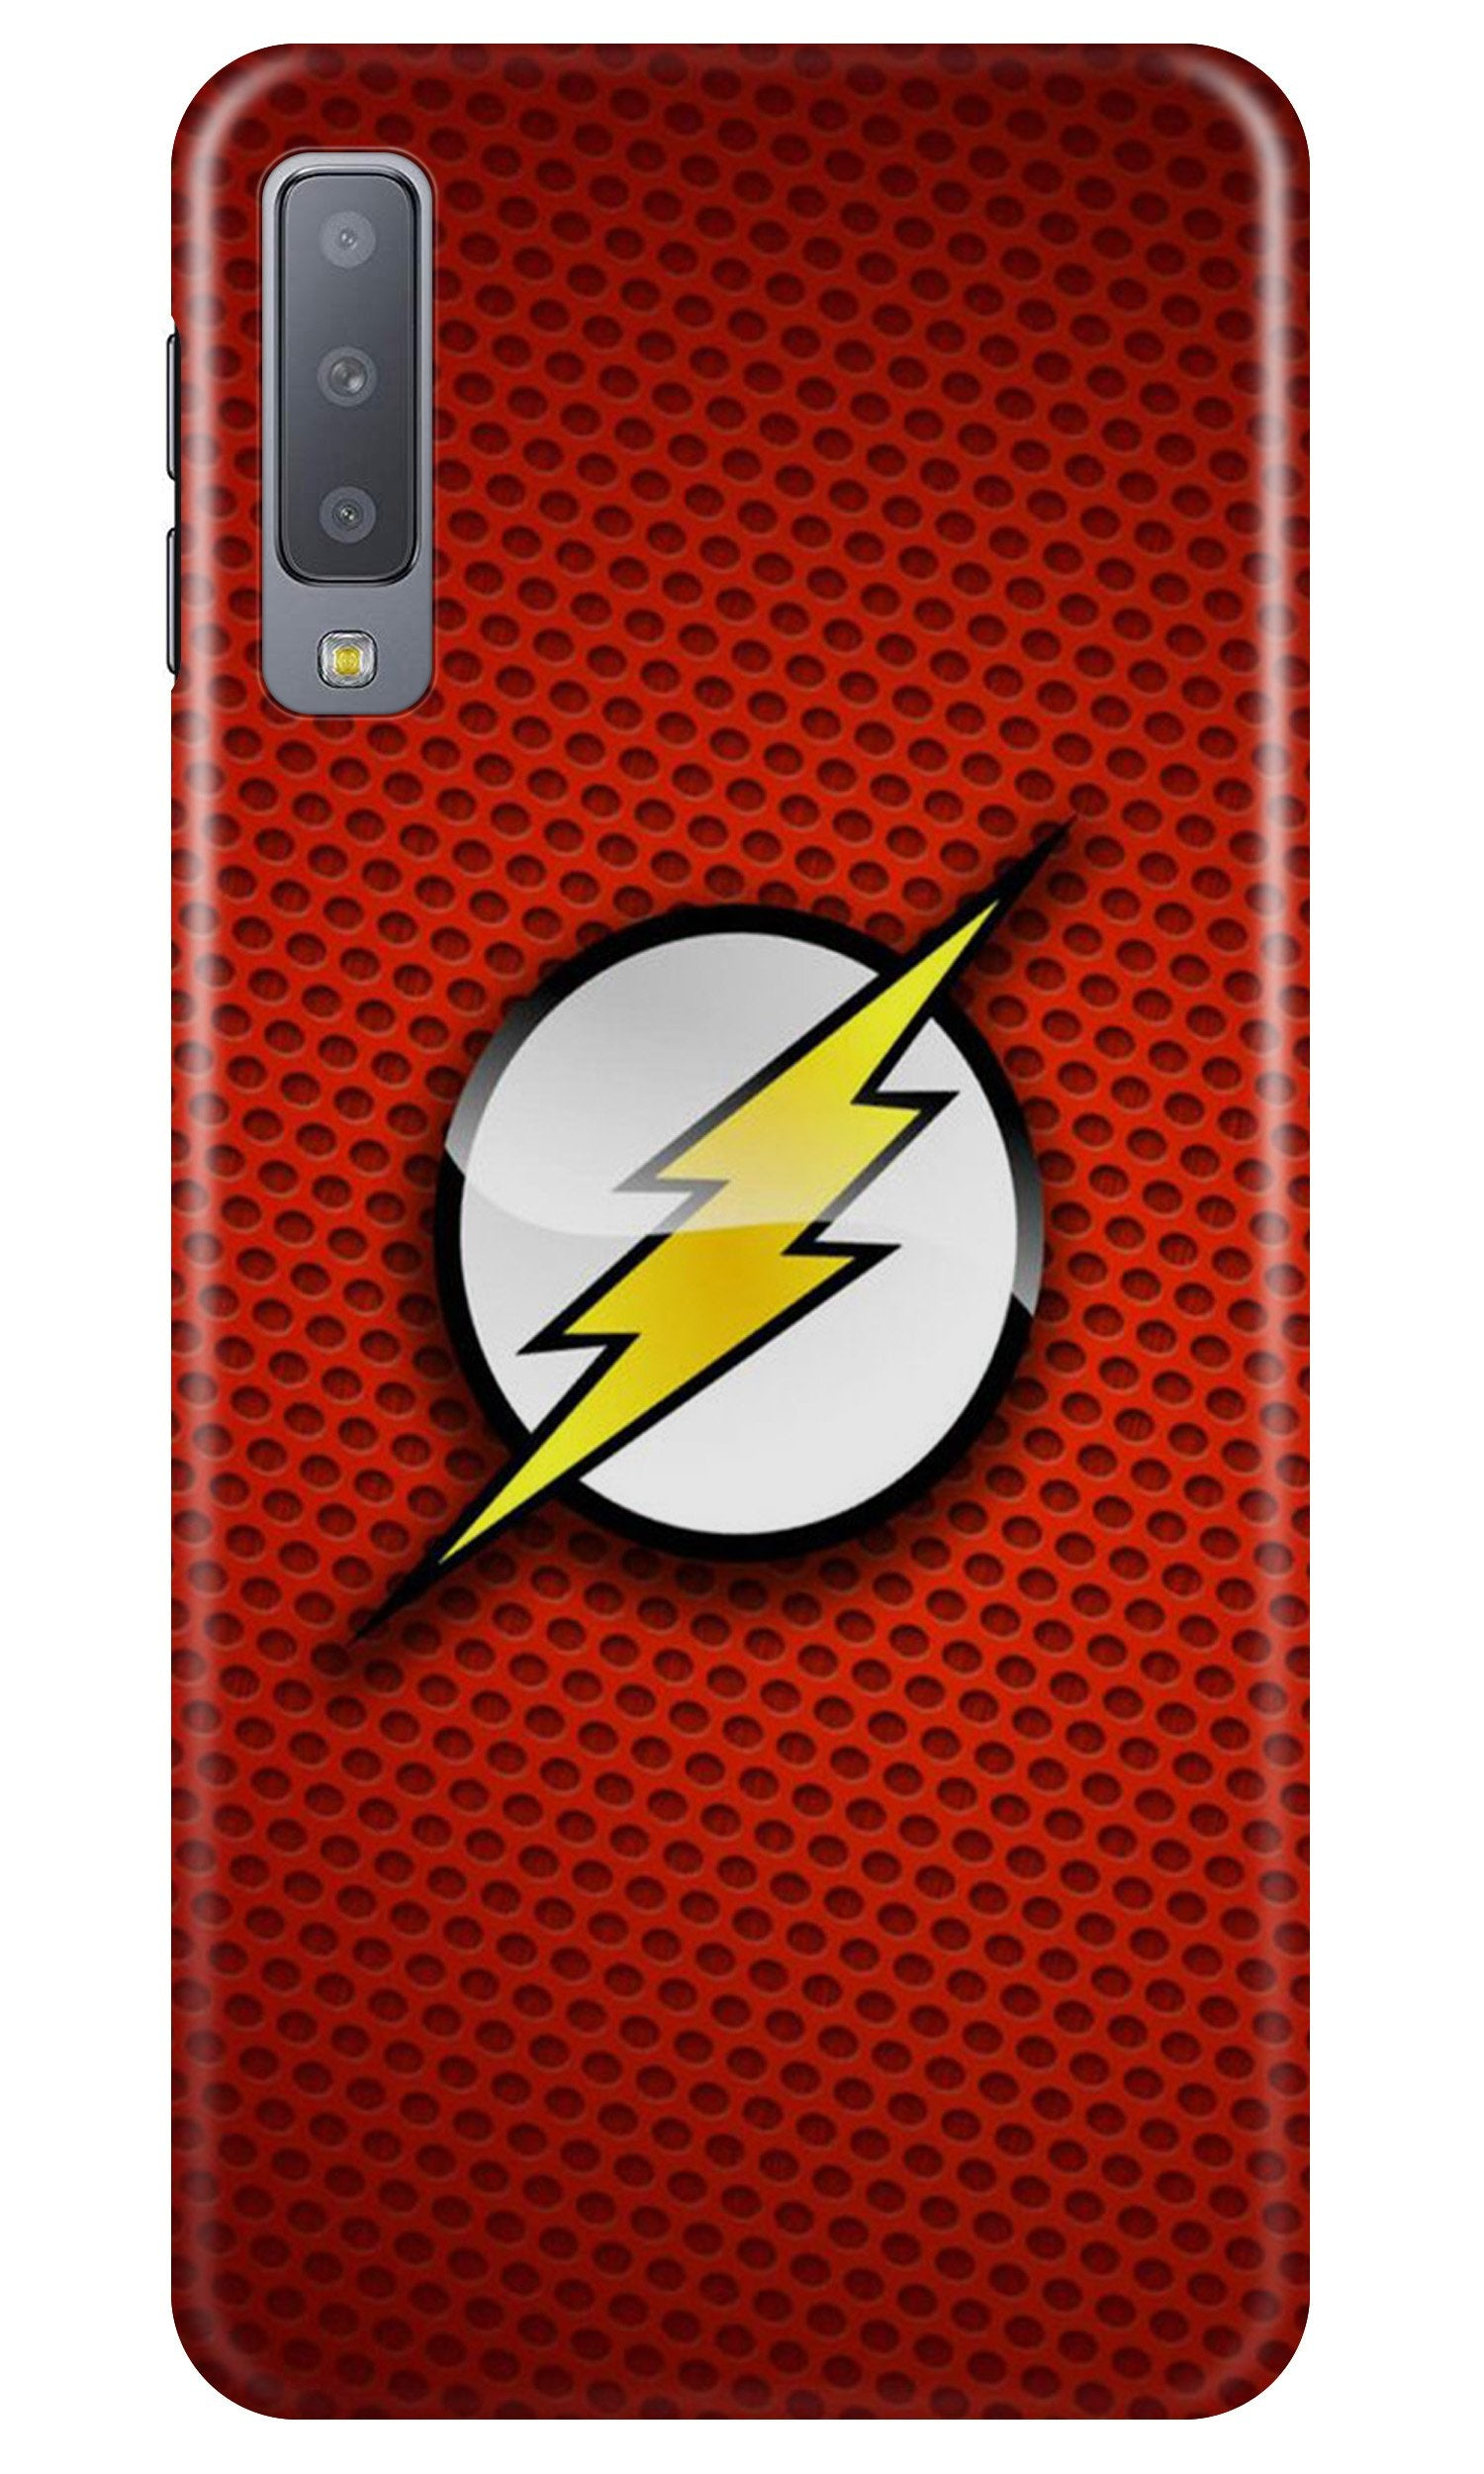 Flash Case for Samsung Galaxy A50 (Design No. 252)